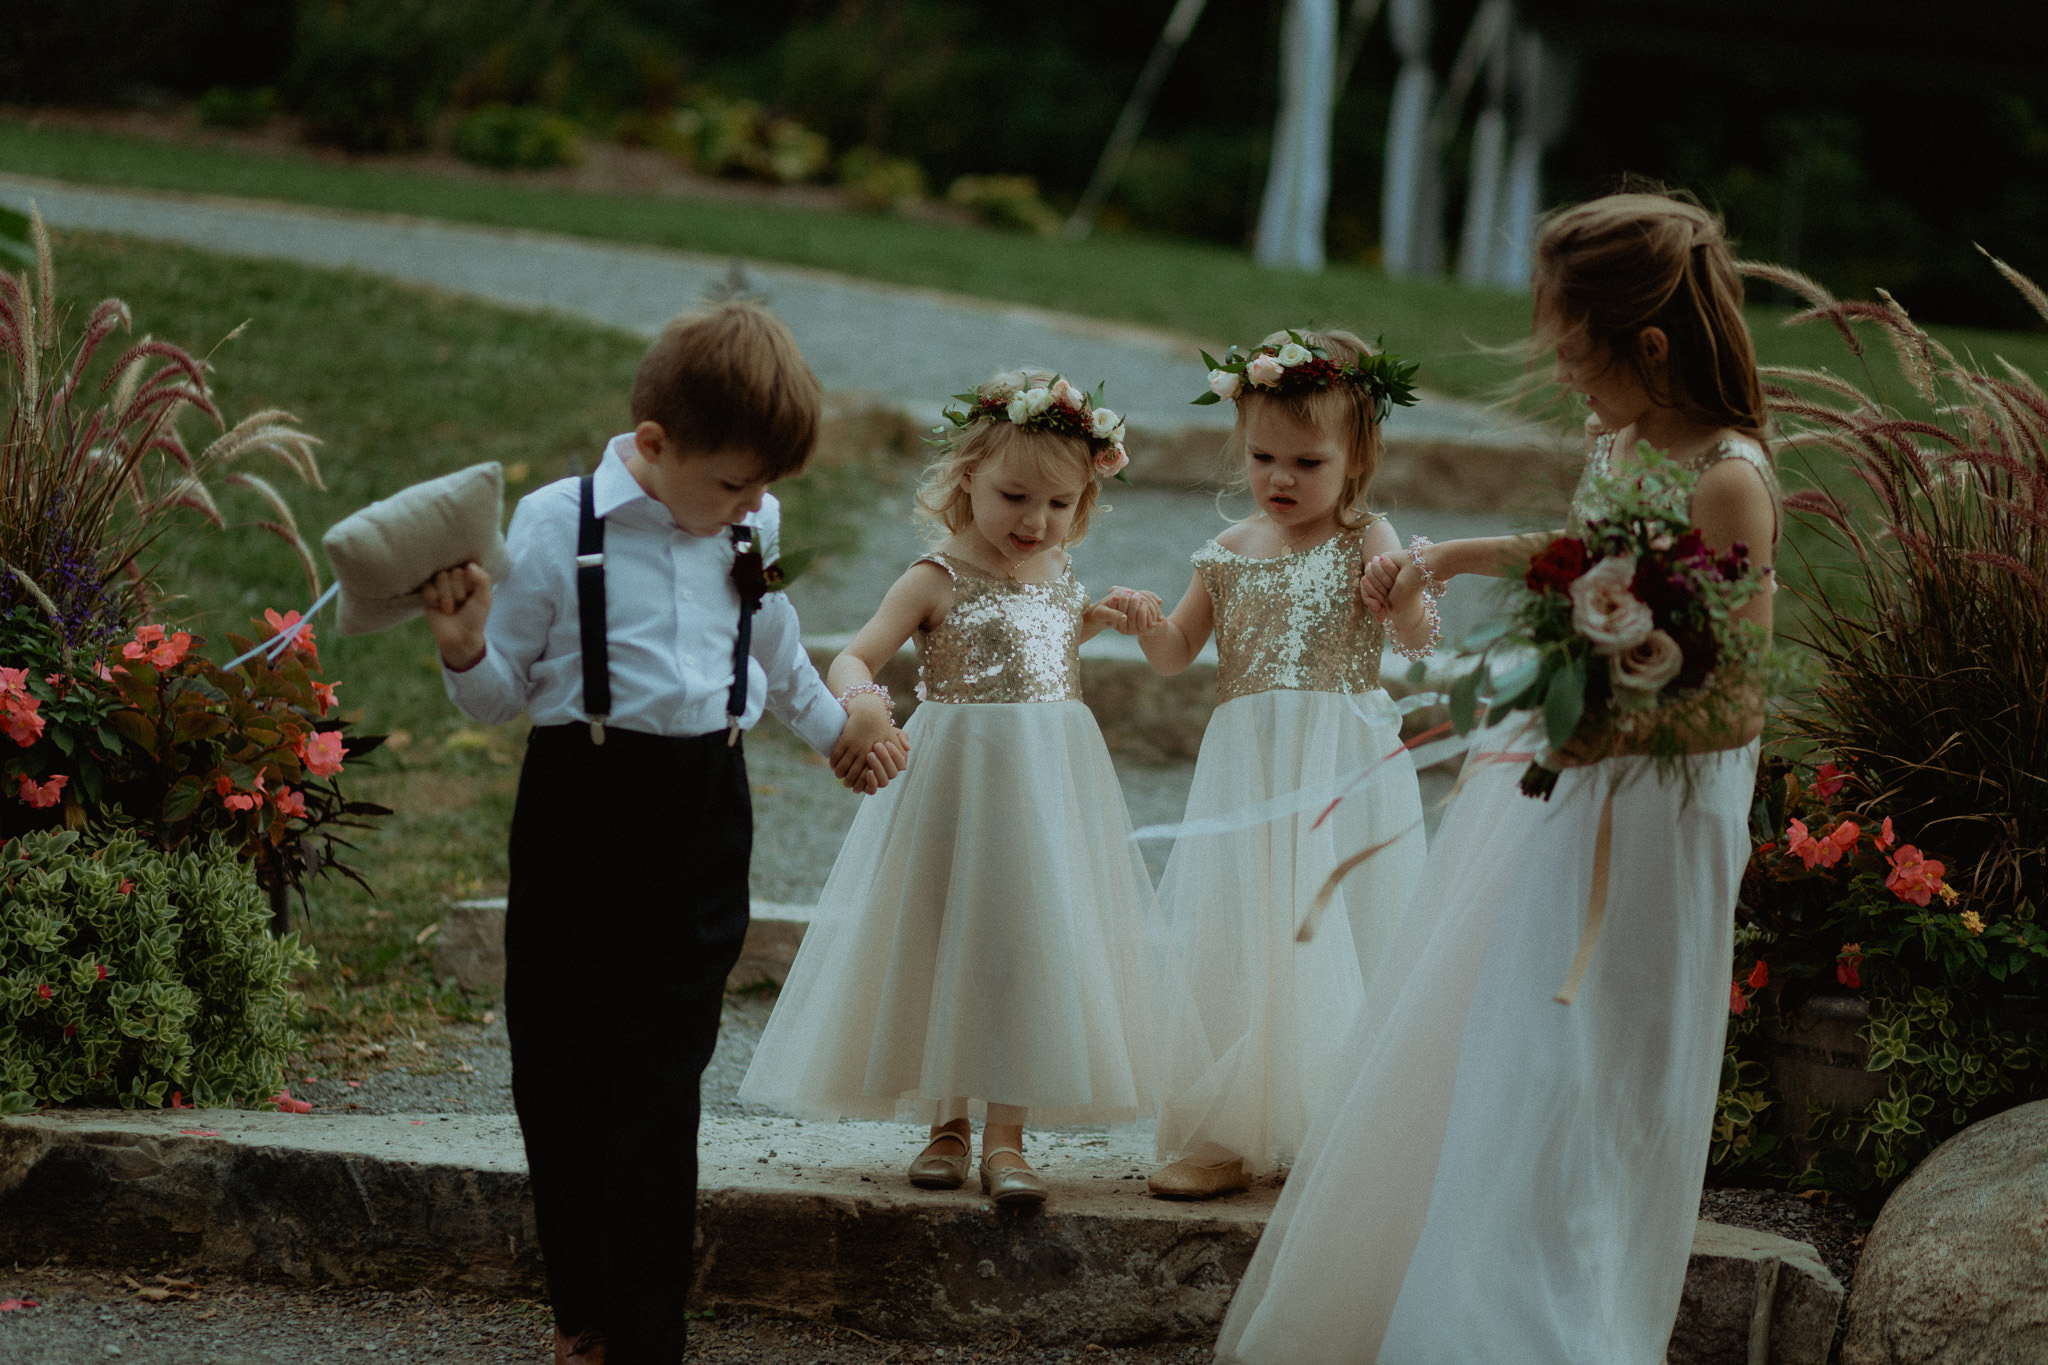 Ring bearer and flower girls entrance wedding photography outdoor barn venue peterborough